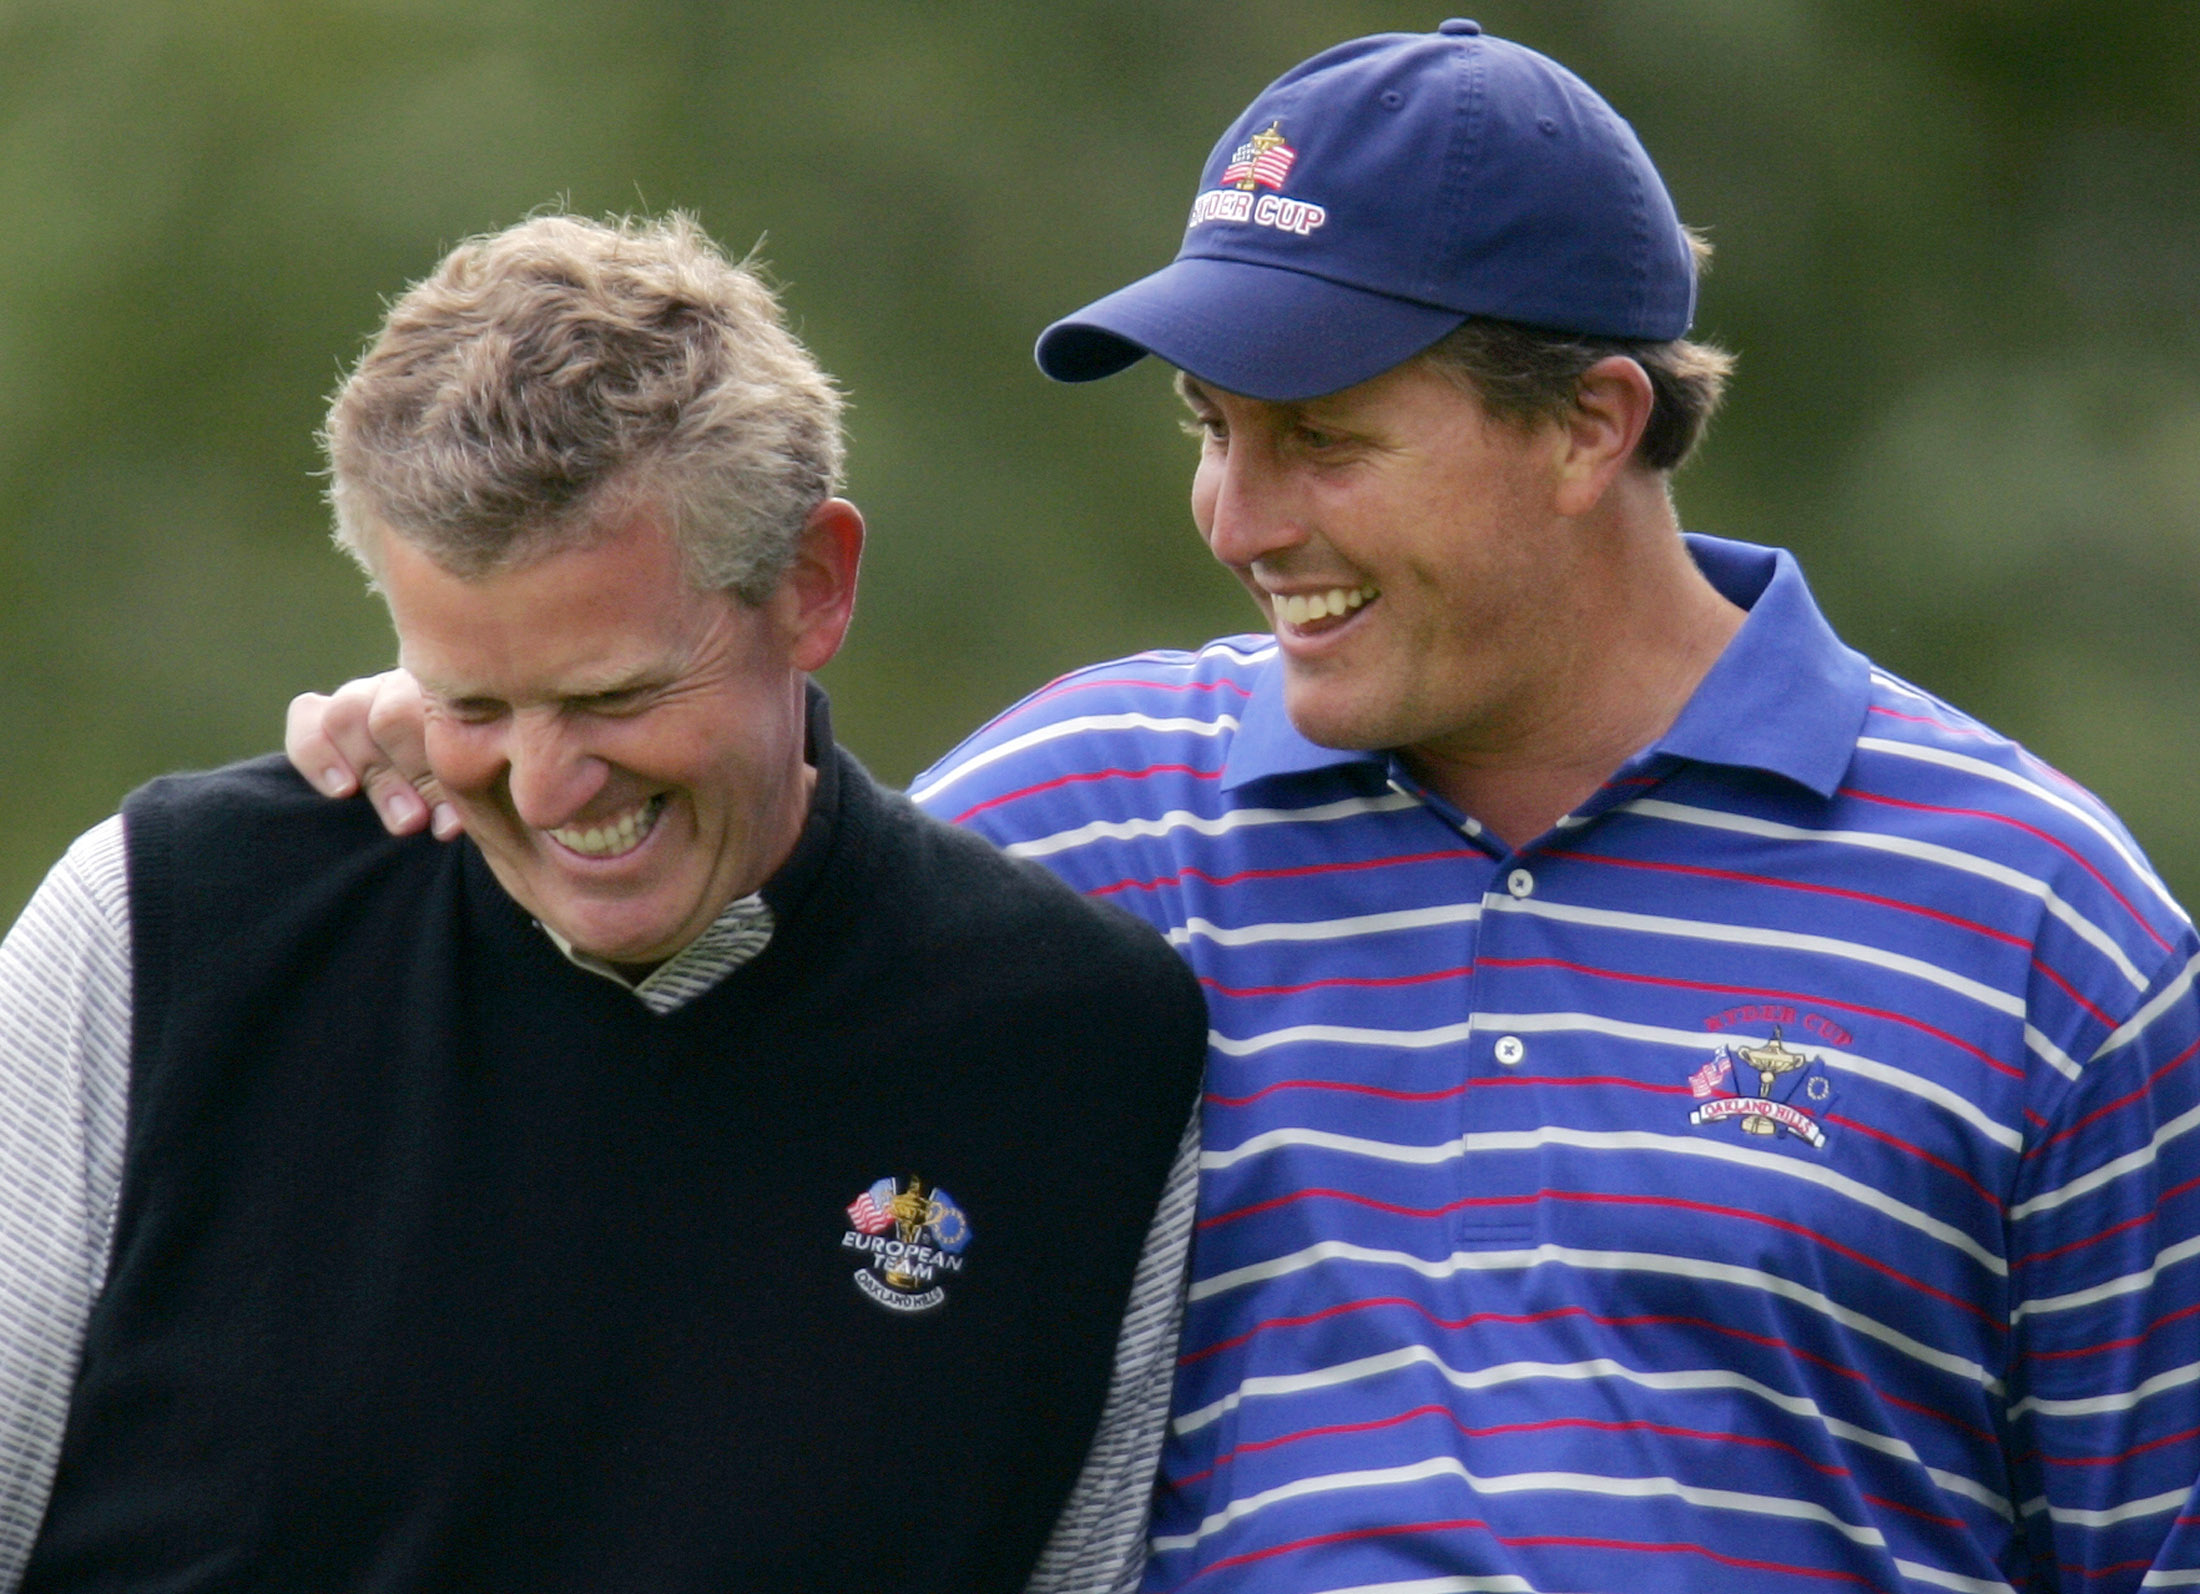 U.S. Ryder Cup golfer Phil Mickelson (R) shares a laugh with European golfer Colin Montgomerie, from Scotland, on the seventh green during their first round four-ball match at the 35th Ryder Cup Matches in Bloomfield, Michigan, September 17, 2004.